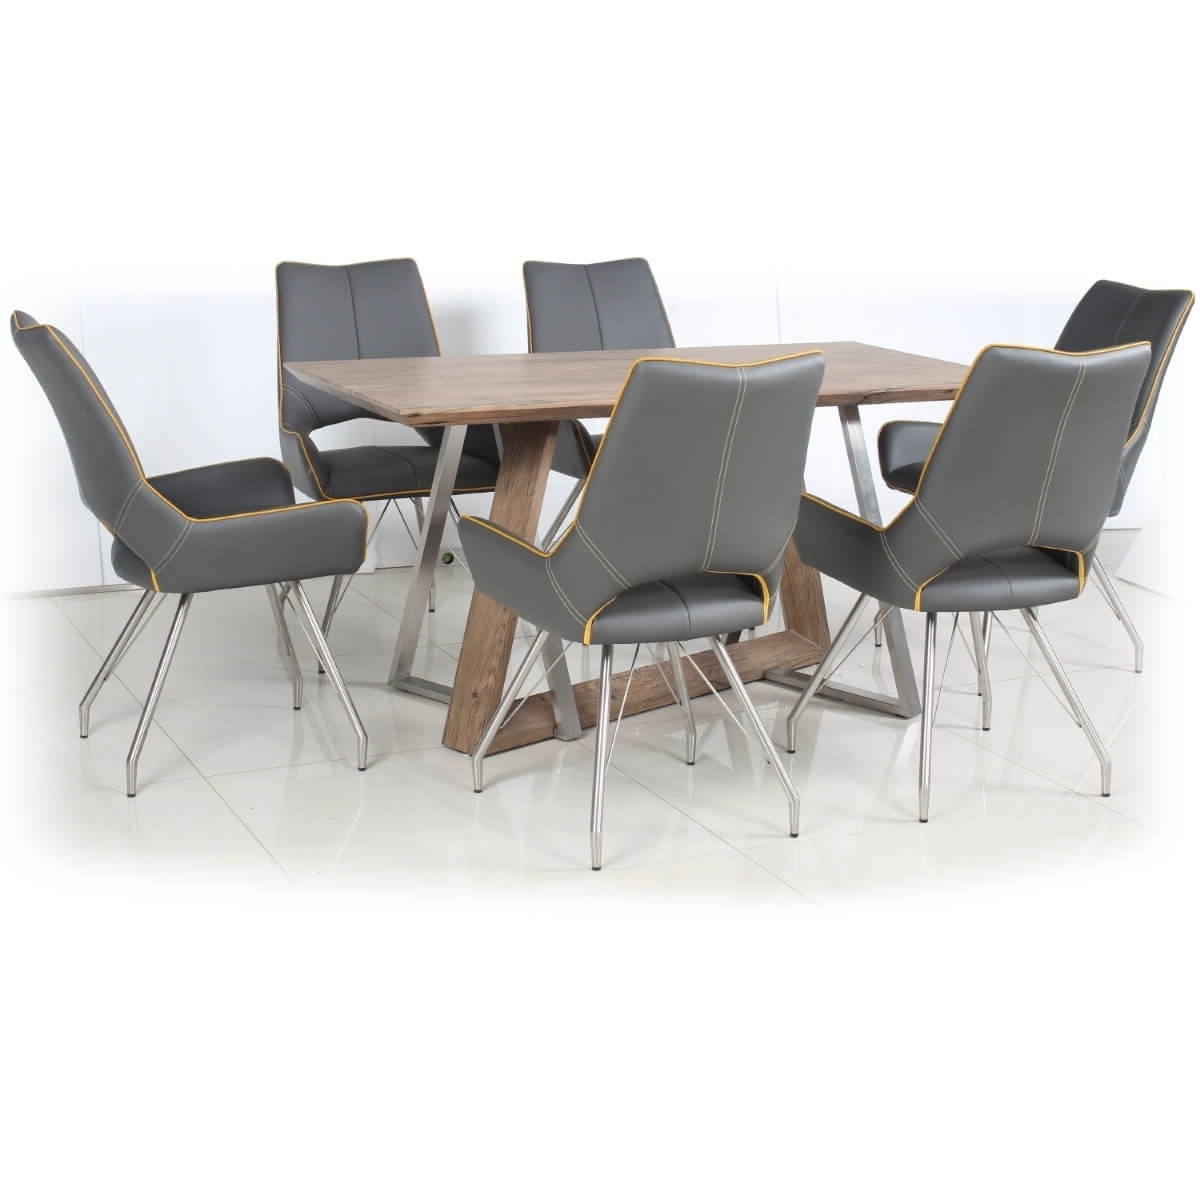 Most Recent Dining Set – Industrial Style Wood Dining Table And 6 Grey Dining For Dining Tables Grey Chairs (Gallery 20 of 25)